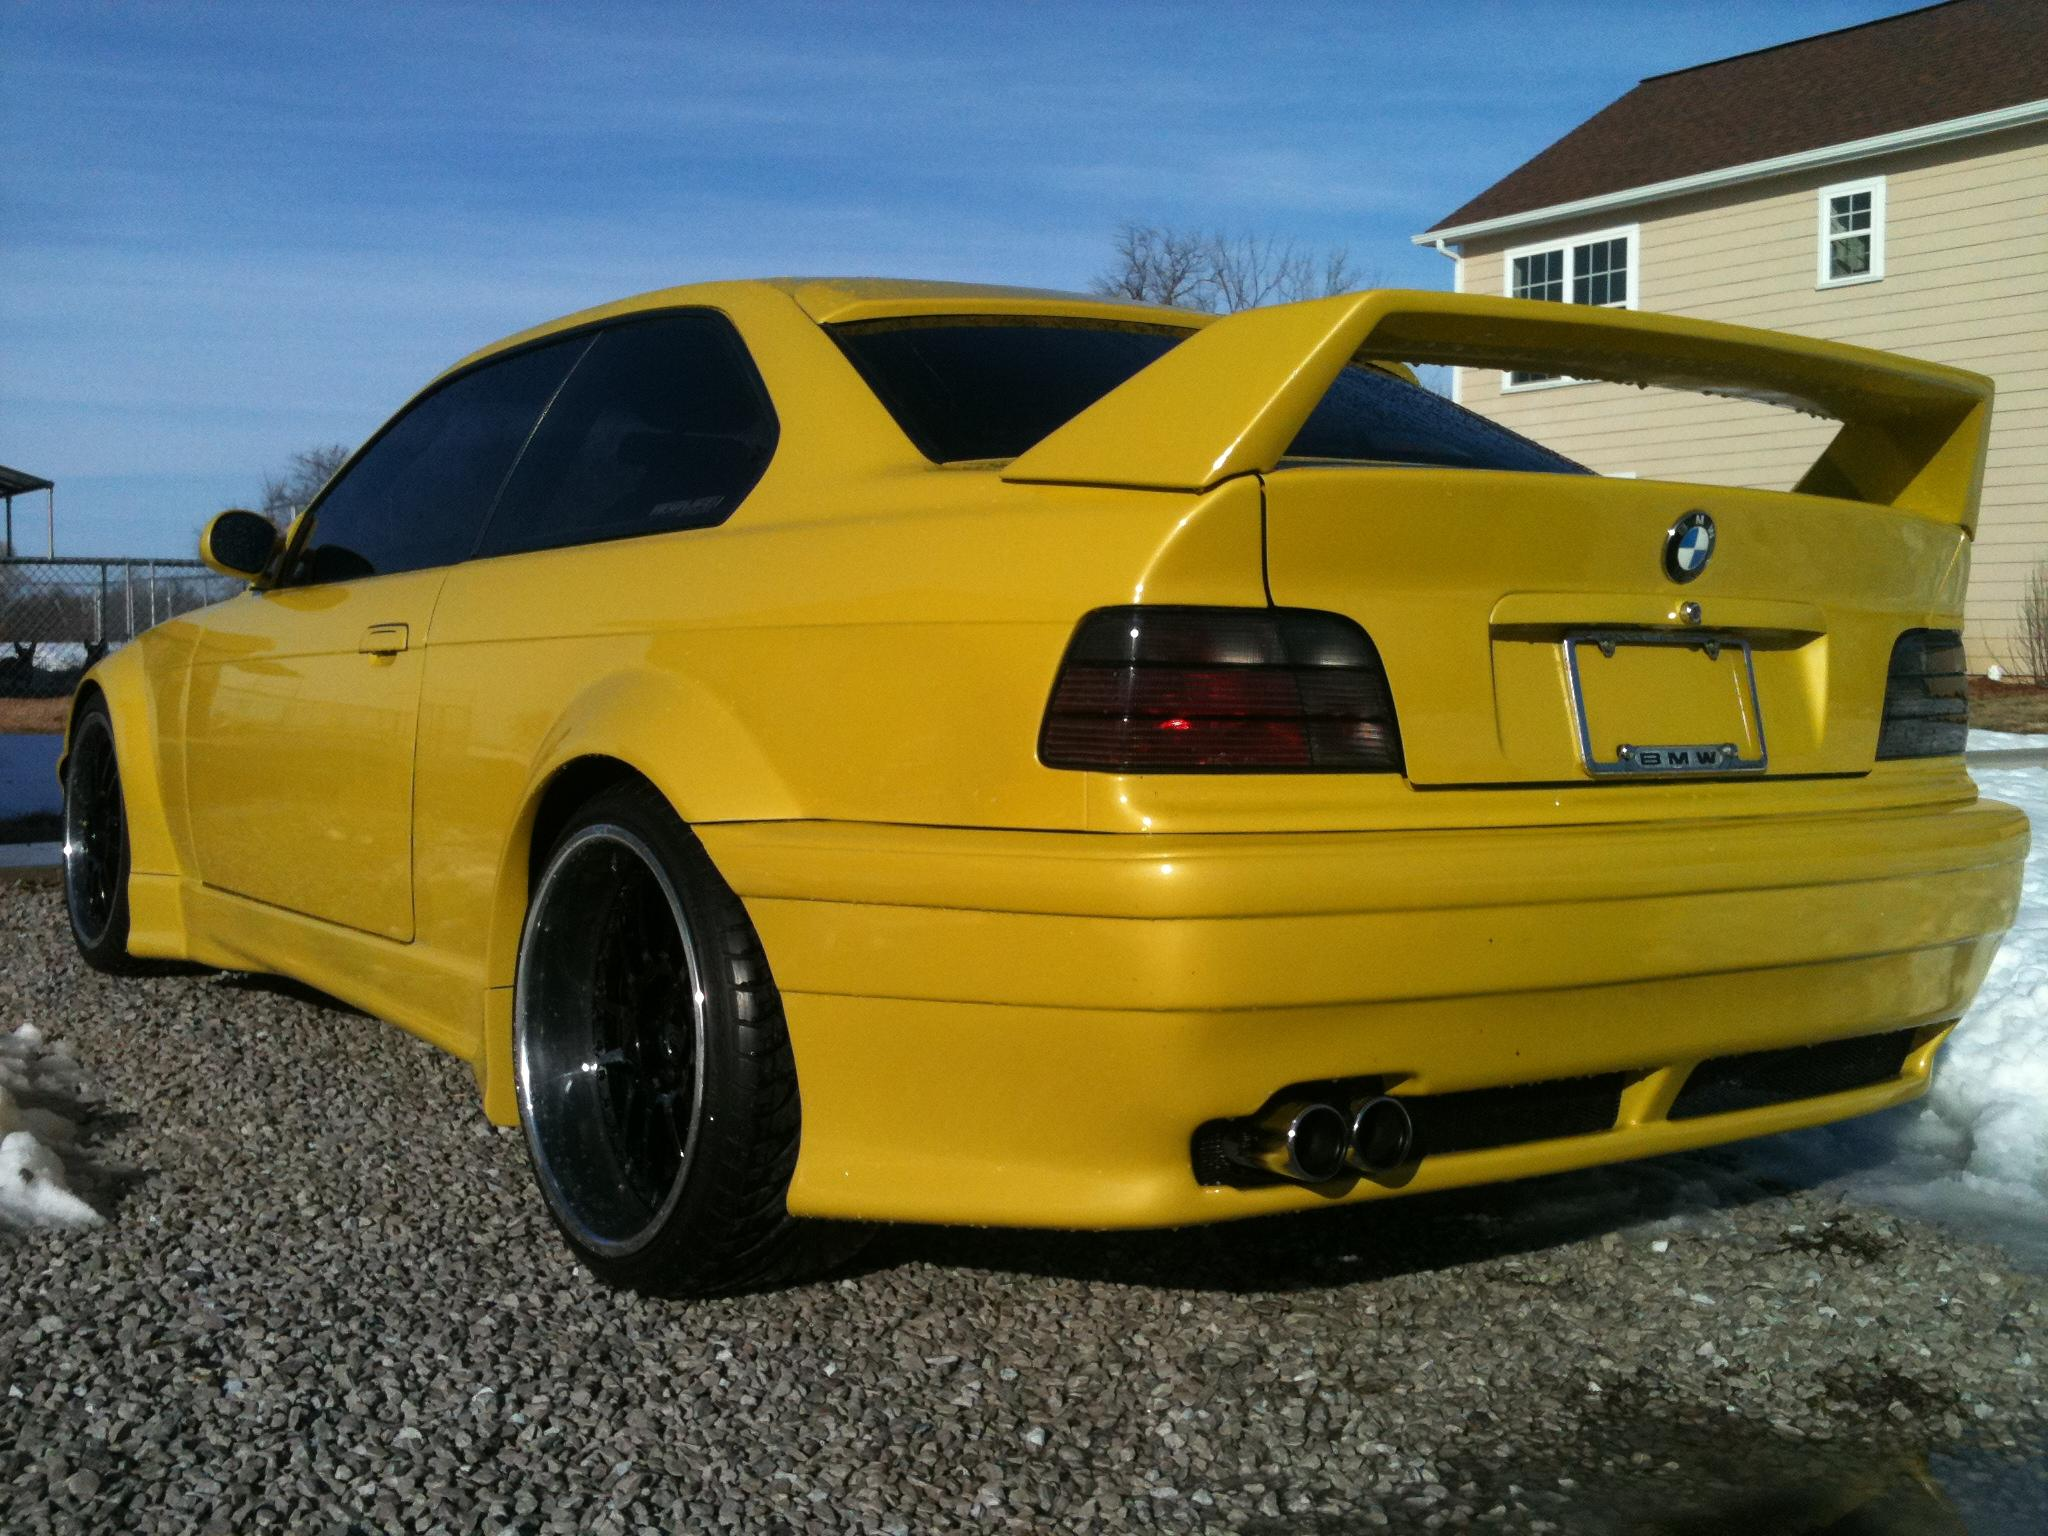 bumblebeamer15 1992 bmw 3 series318is coupe 2d specs photos modification info at cardomain bumblebeamer15 1992 bmw 3 series318is coupe 2d specs photos modification info at cardomain